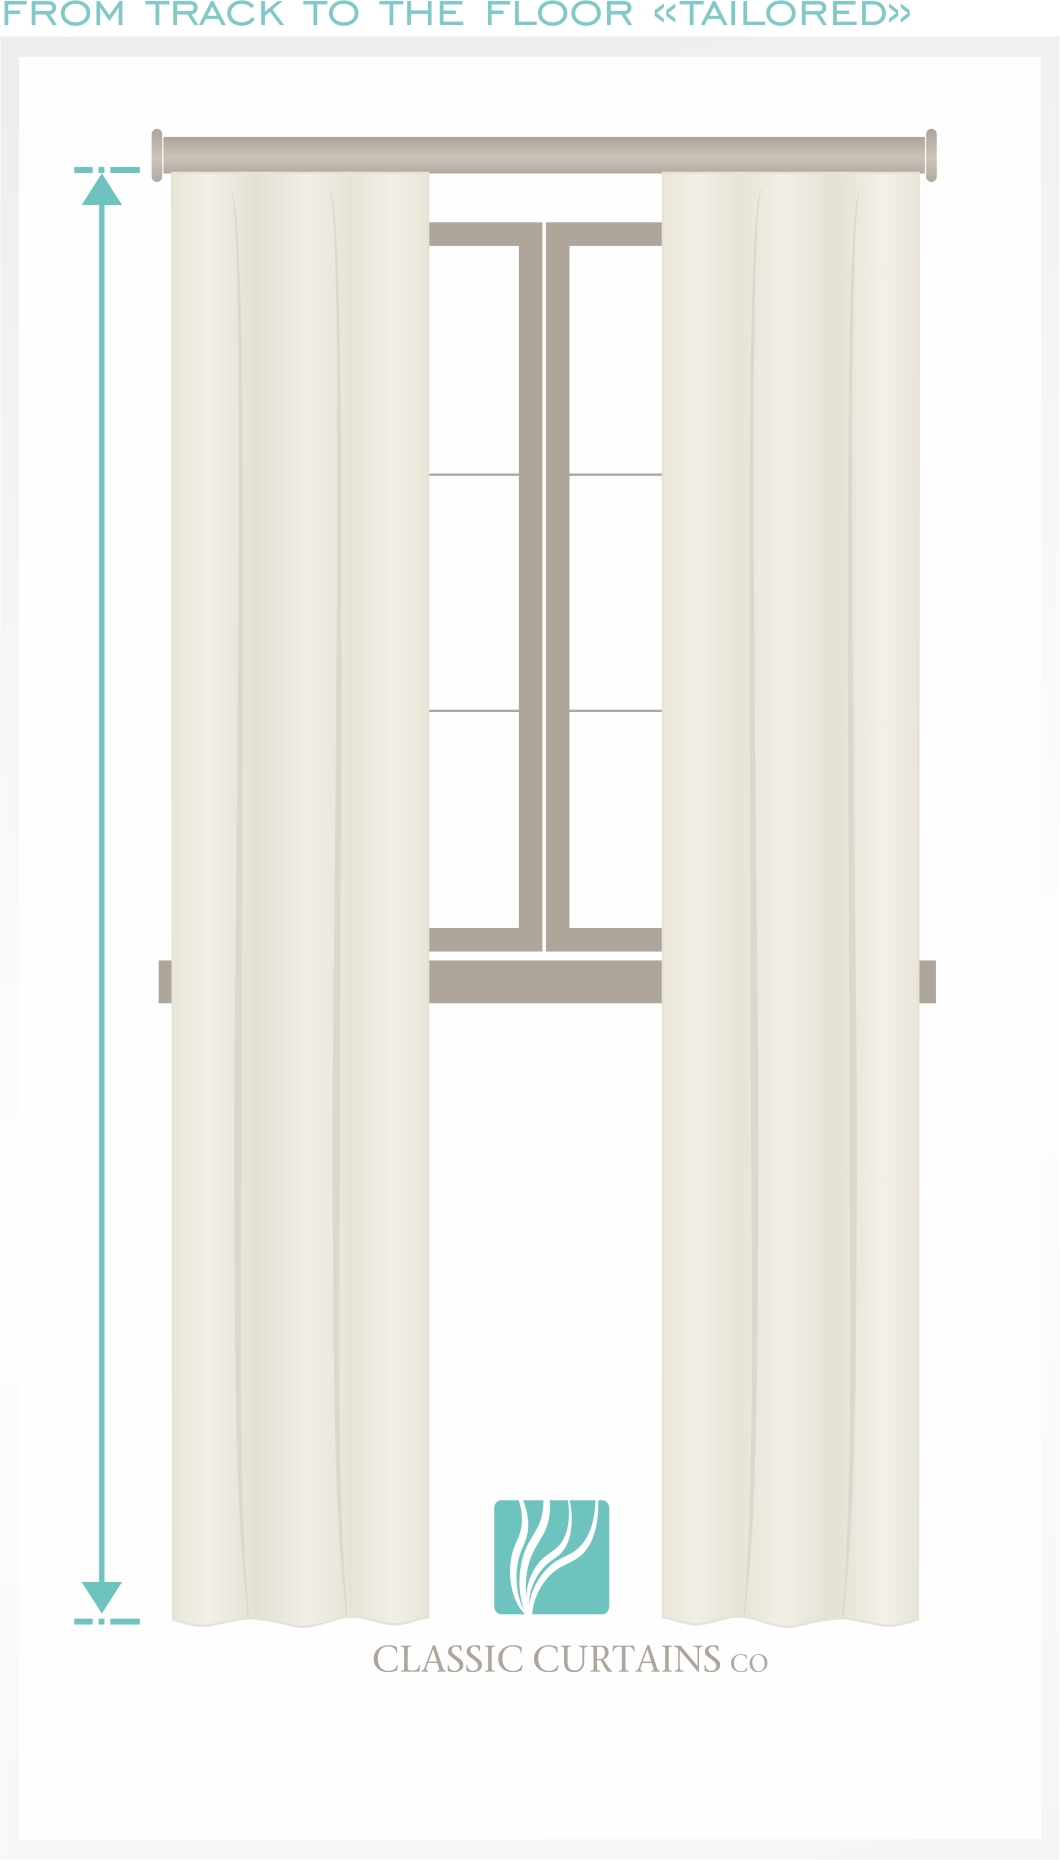 For a tailored, modern contemporary look with clean lines measure the length of your curtain to the floor.